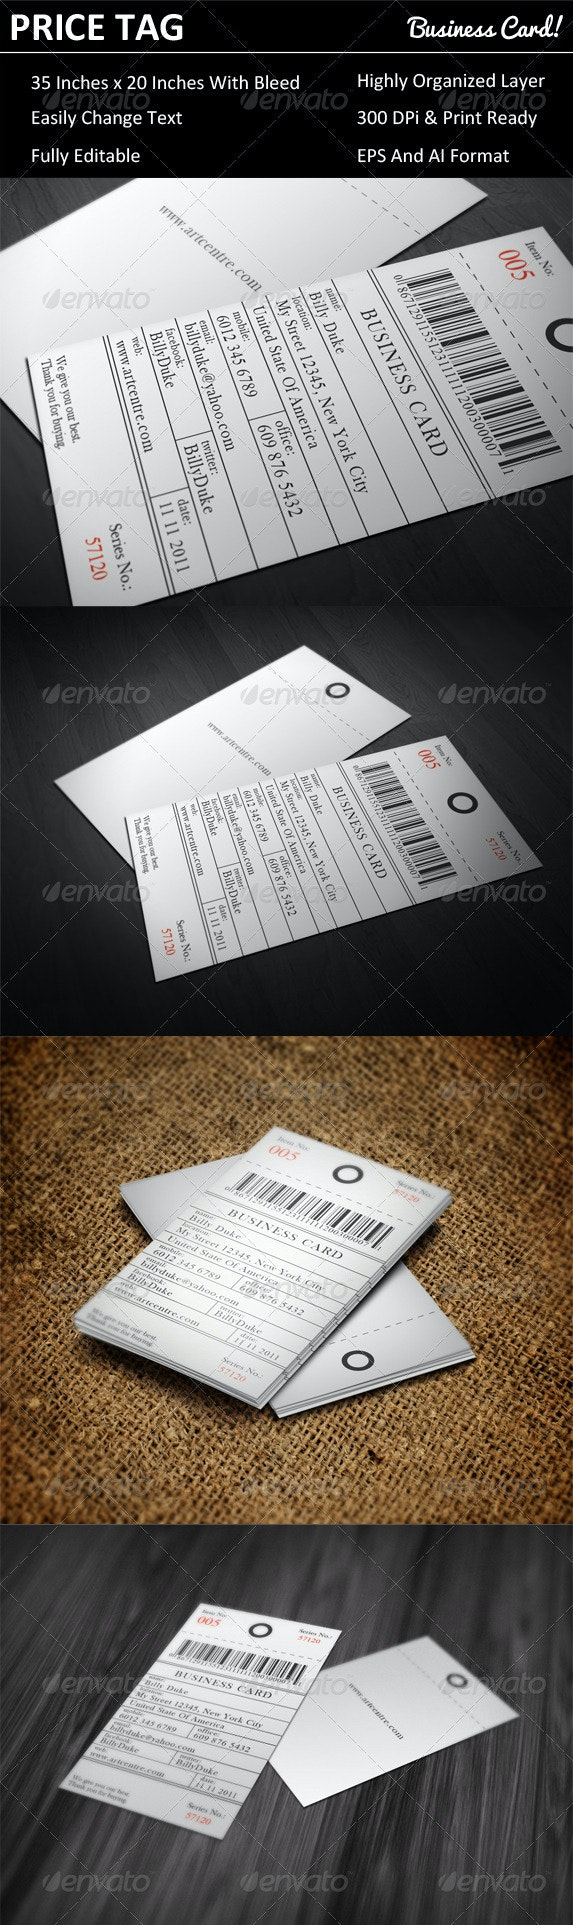 Price Tag Business Card - Creative Business Cards